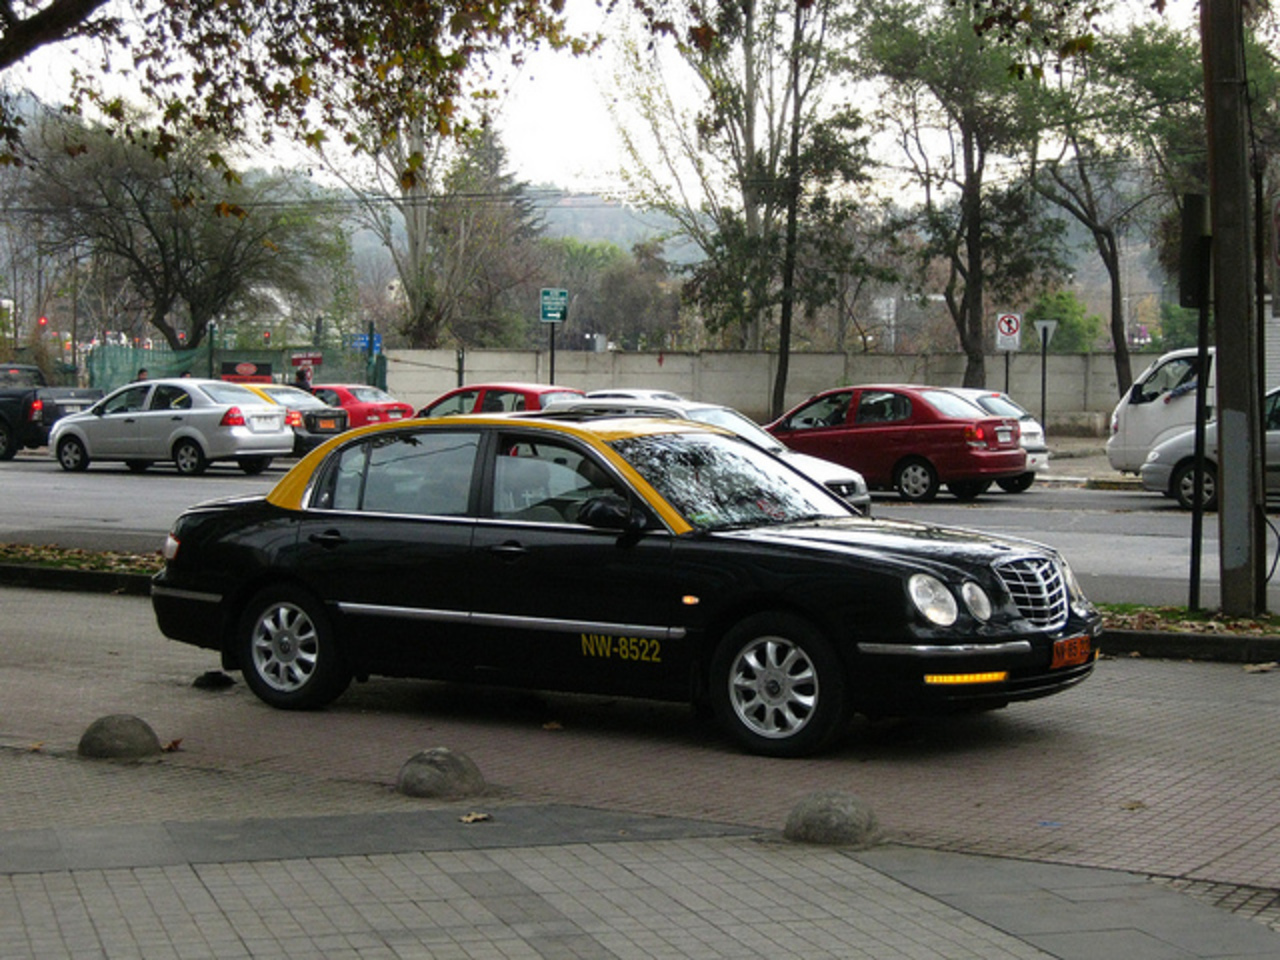 Kia Opirus taxi, Santiago, Chile | Flickr - Photo Sharing!